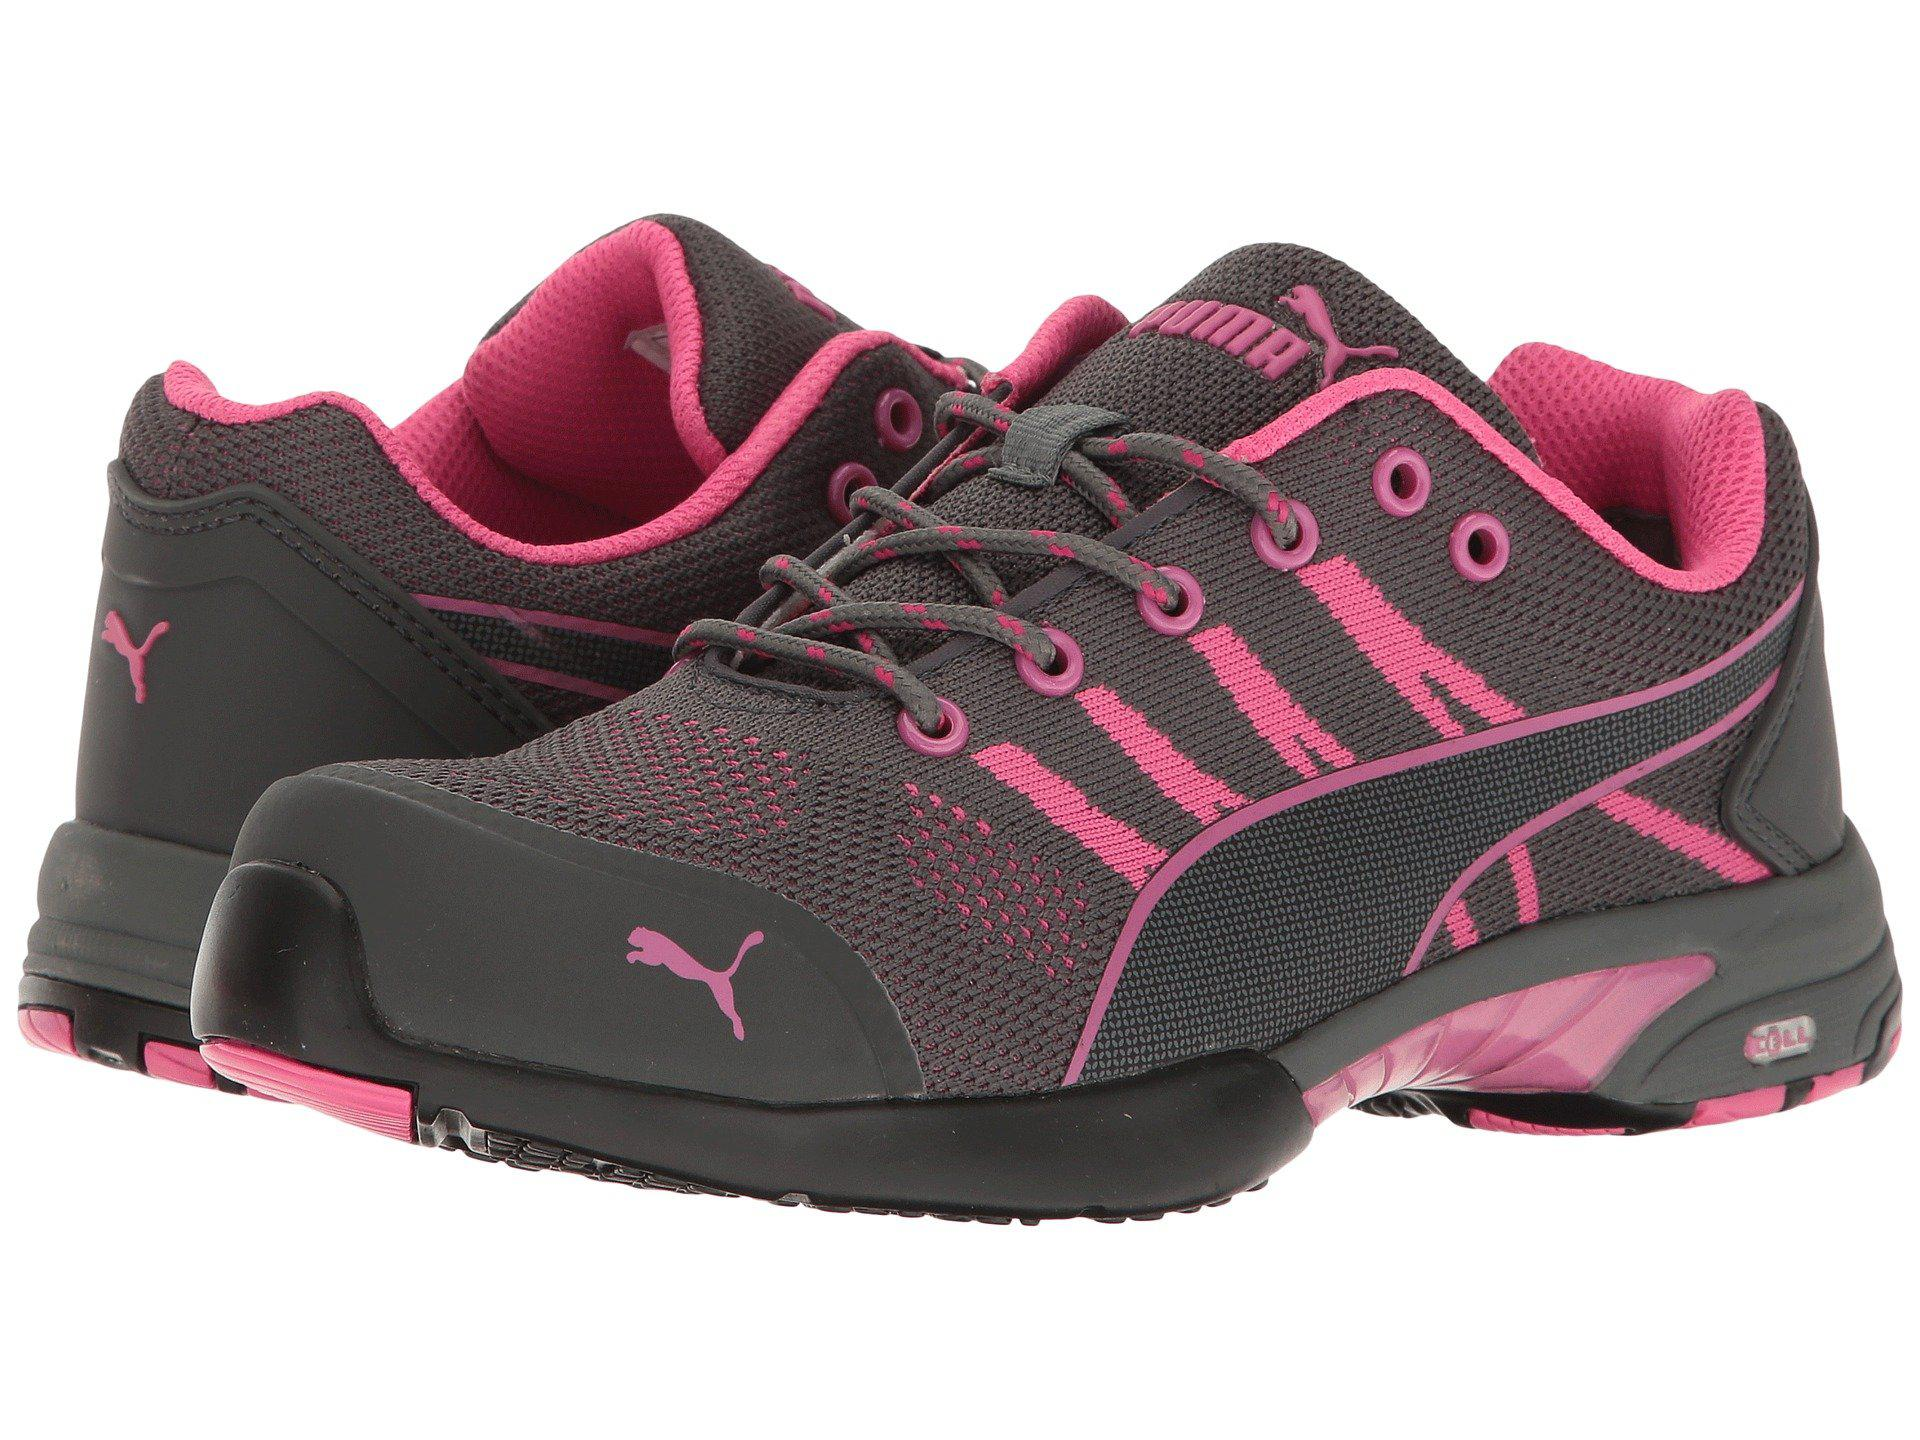 c915db096a6c Lyst - PUMA Celerity Knit Sd (pink) Women s Work Boots in Pink